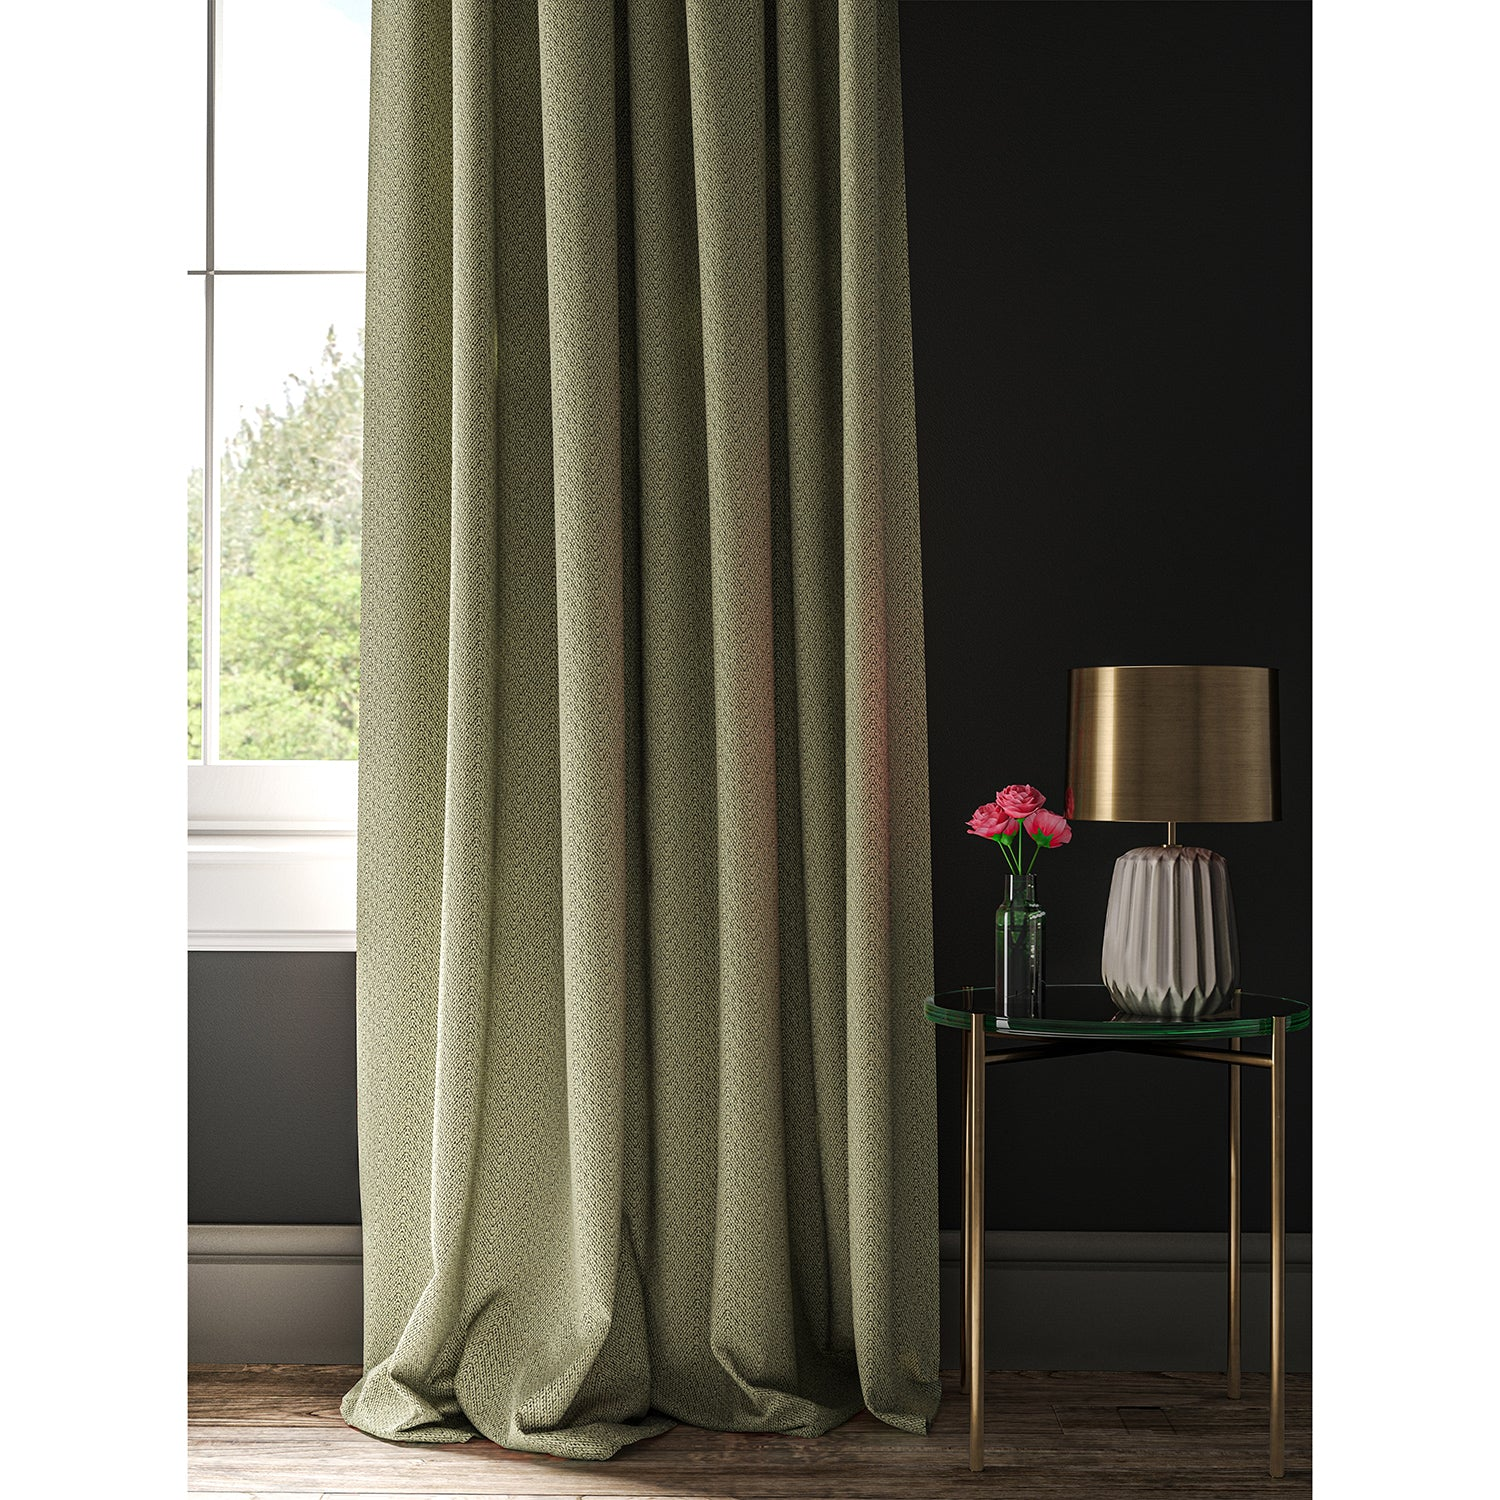 Curtain made with black and neutral geometric fabric.